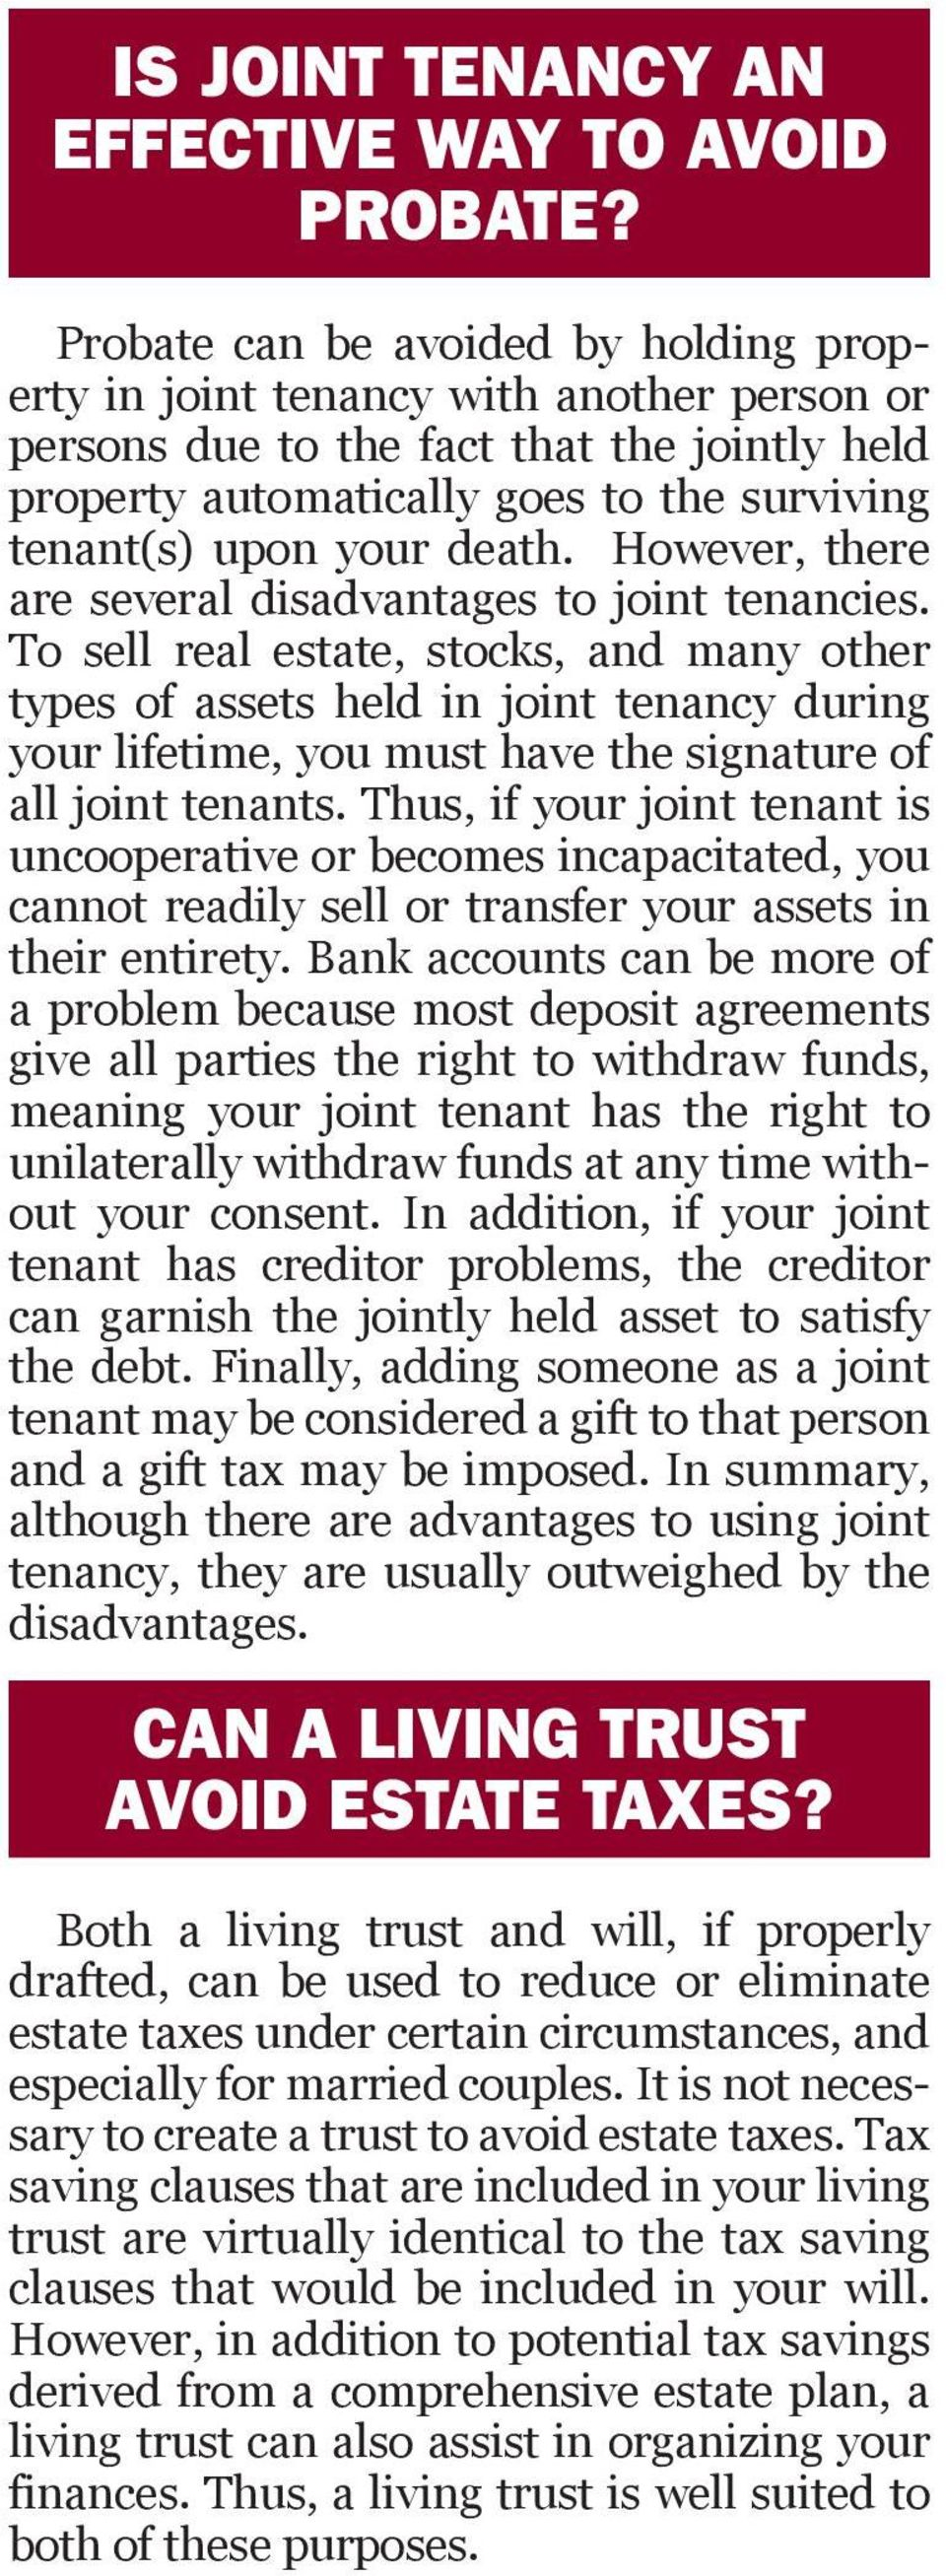 However, there are several disadvantages to joint tenancies.